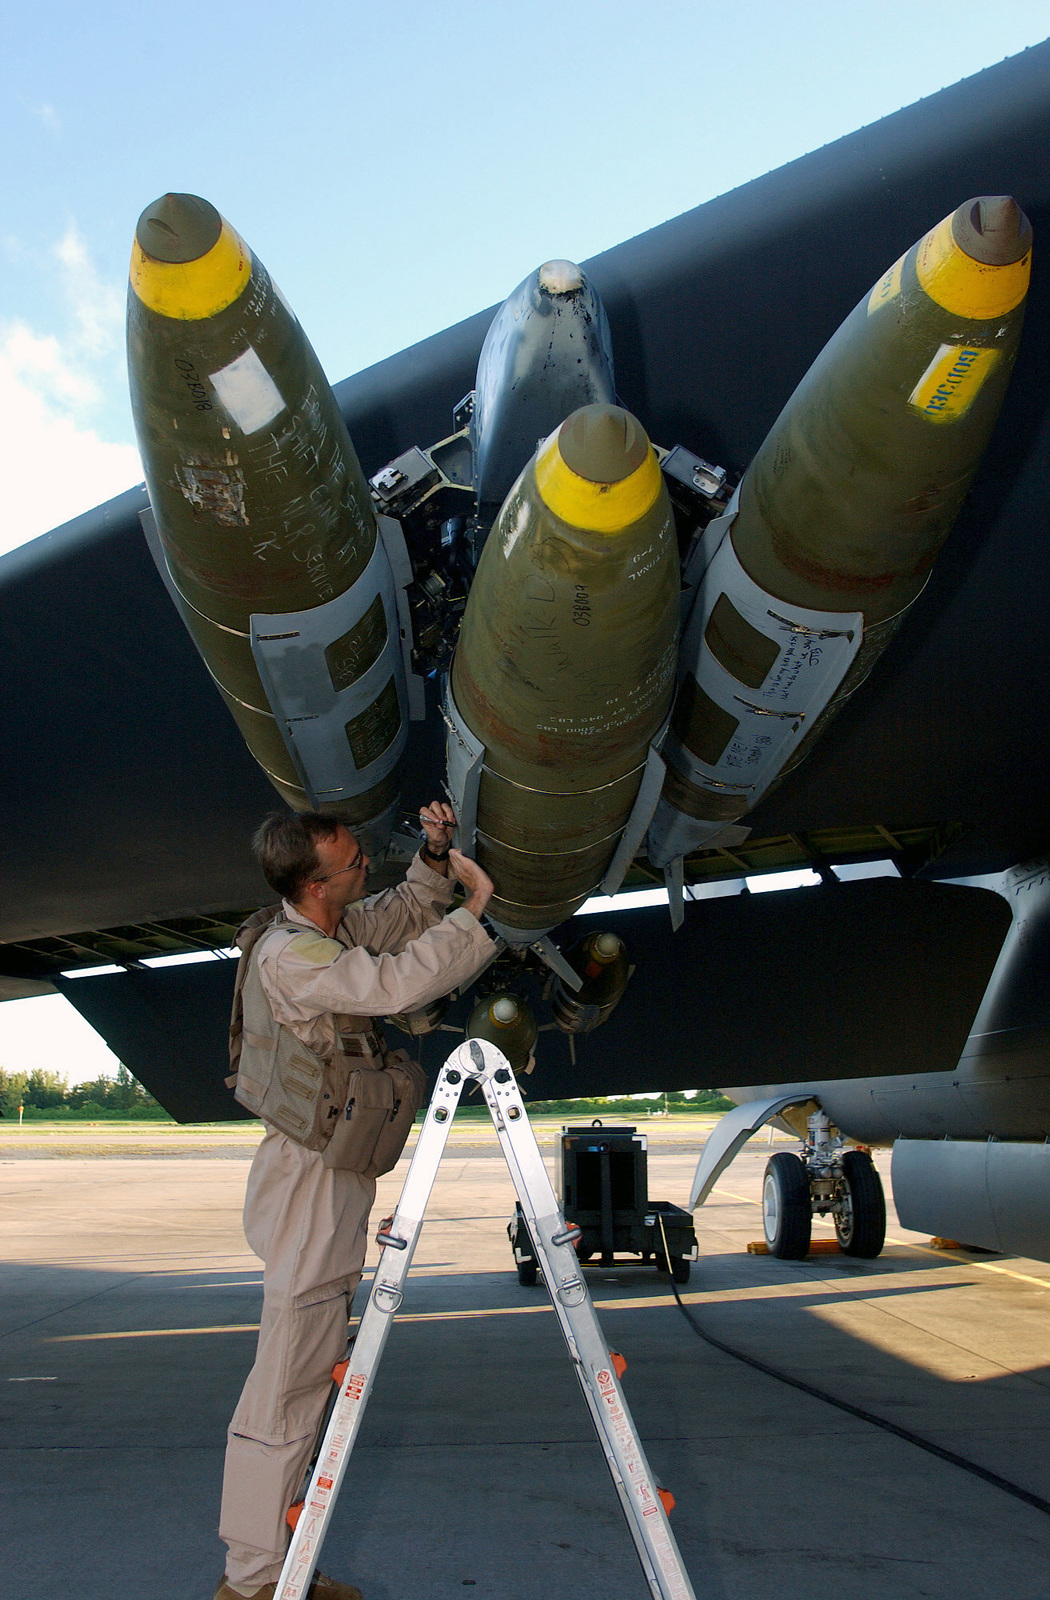 US Air Force (USAF) Captain (CAPT) Cameron Warren, Pilot, 40th Expeditionary Bomb Squadron (EBS), signs a Mk-84 Bomb JDAM (Joint Direct Attack Munition) before departing on his B-52H Stratofortress for a combat mission over Iraq during Operation IRAQI FREEDOM. Operation IRAQI FREEDOM is the multi-national coalition effort to liberate the Iraqi people, eliminate Iraqi's weapons of mass destruction and end the regime of Saddam Hussein